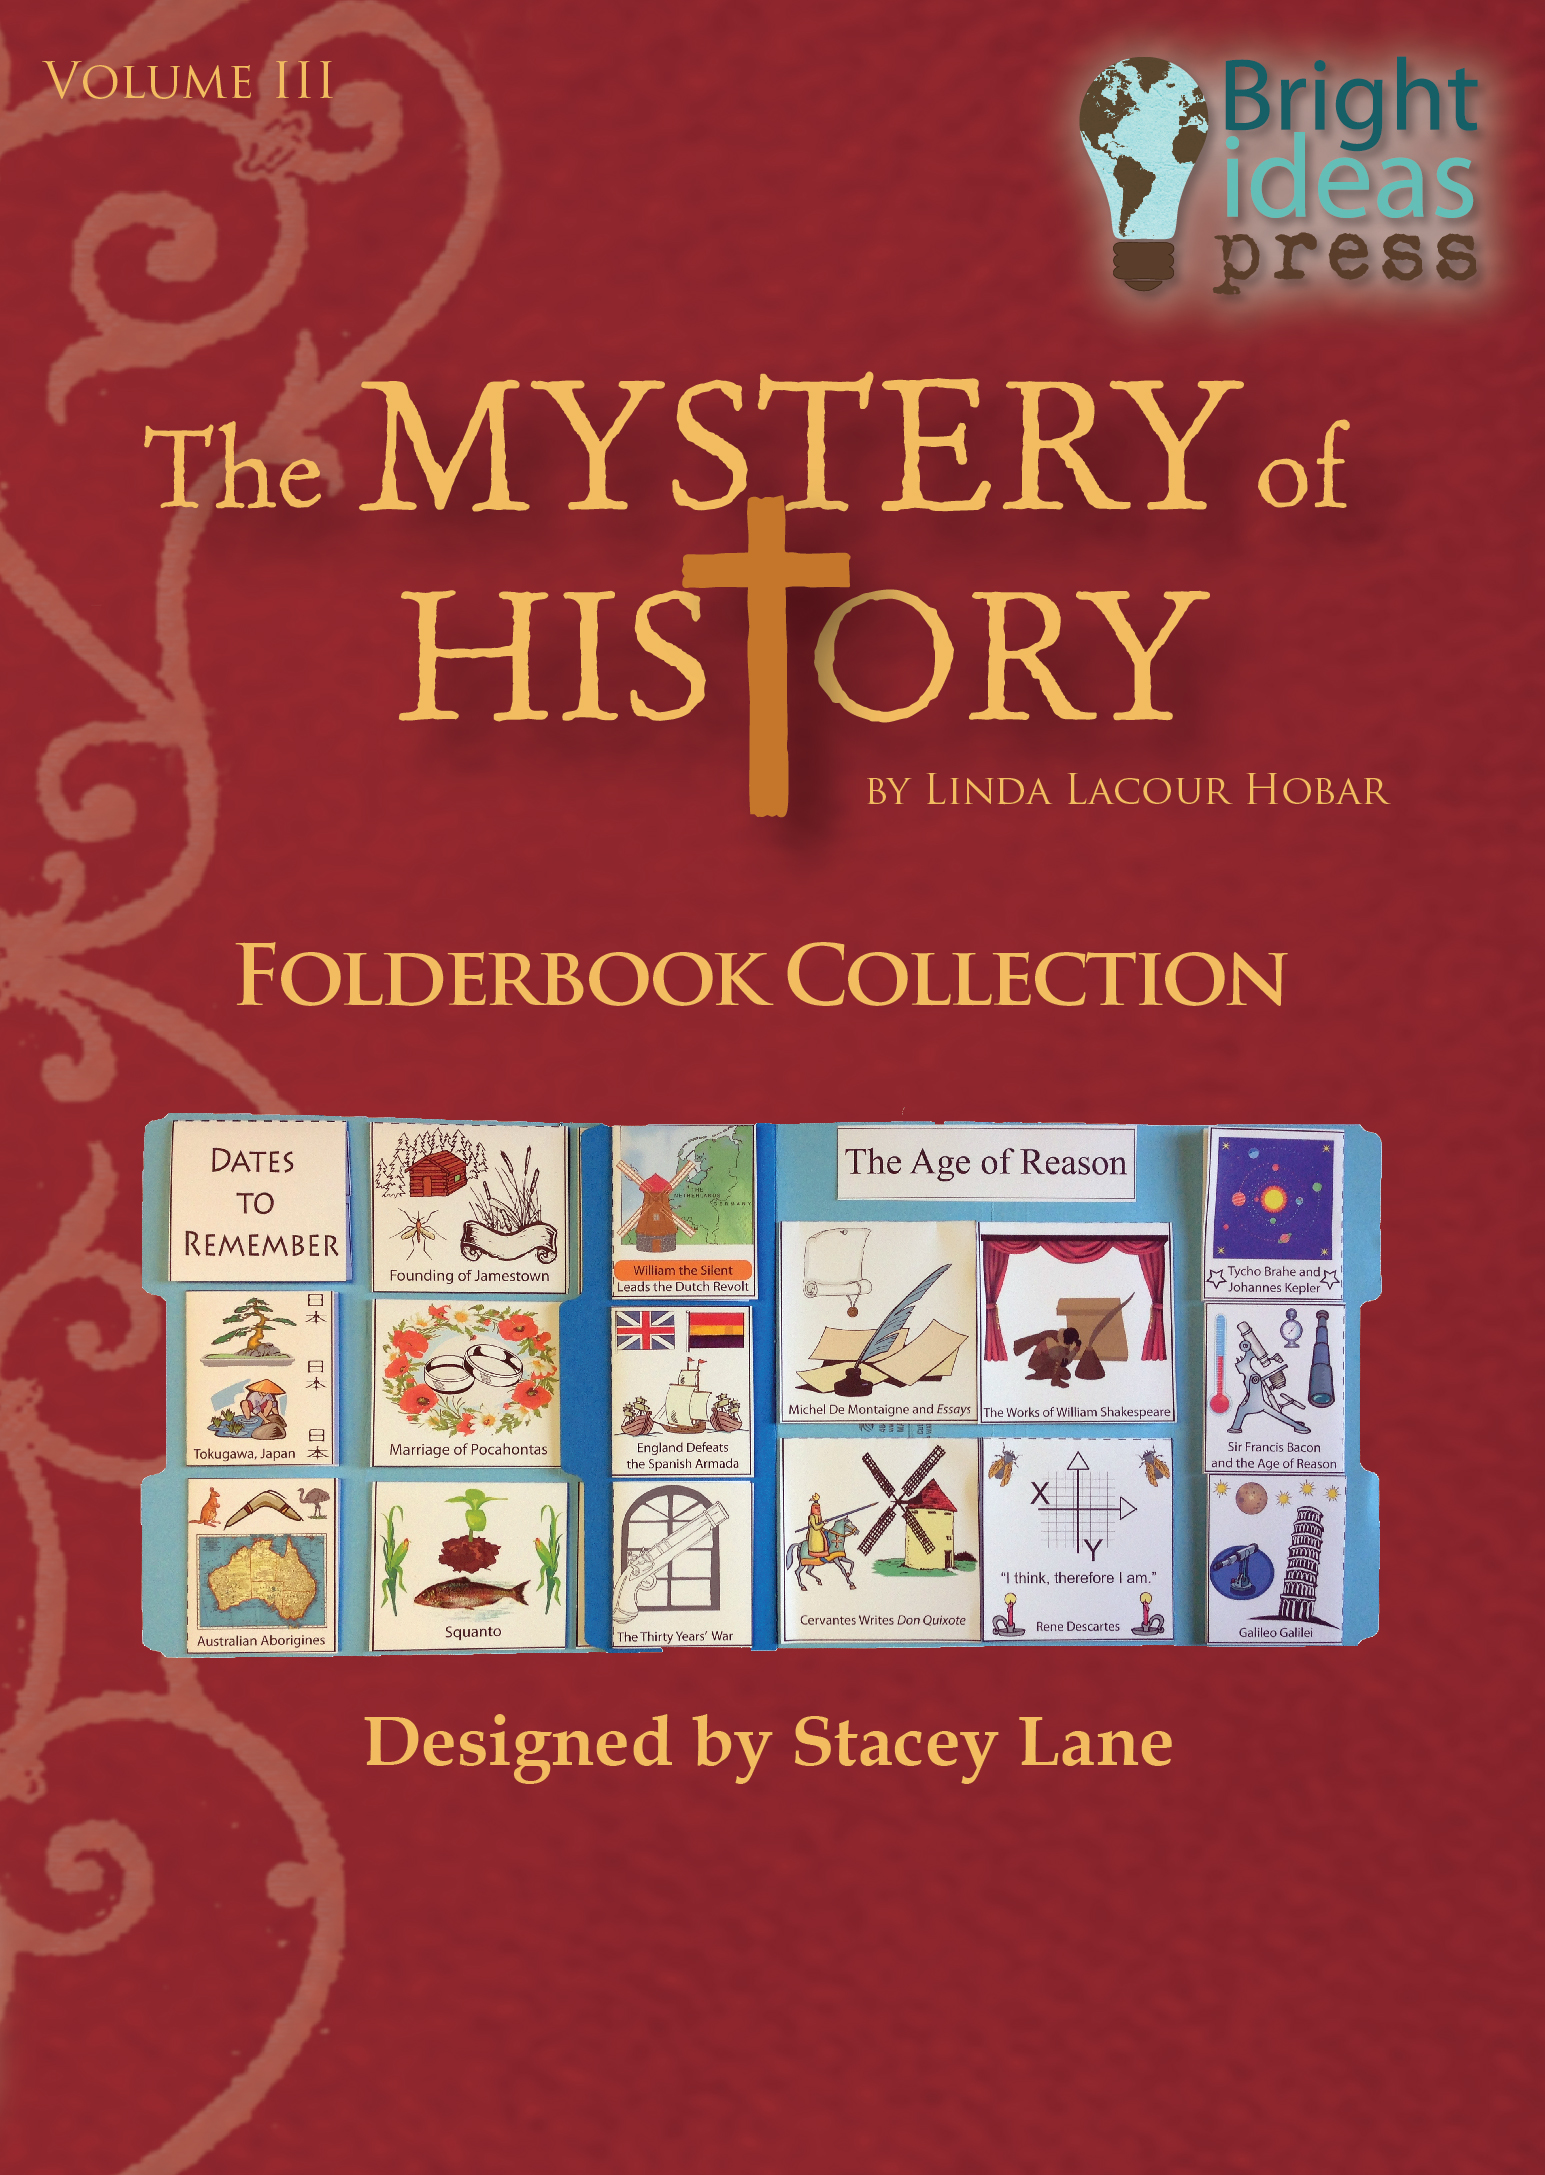 The Mystery of History Volume III Folderbook by Bright Ideas Press